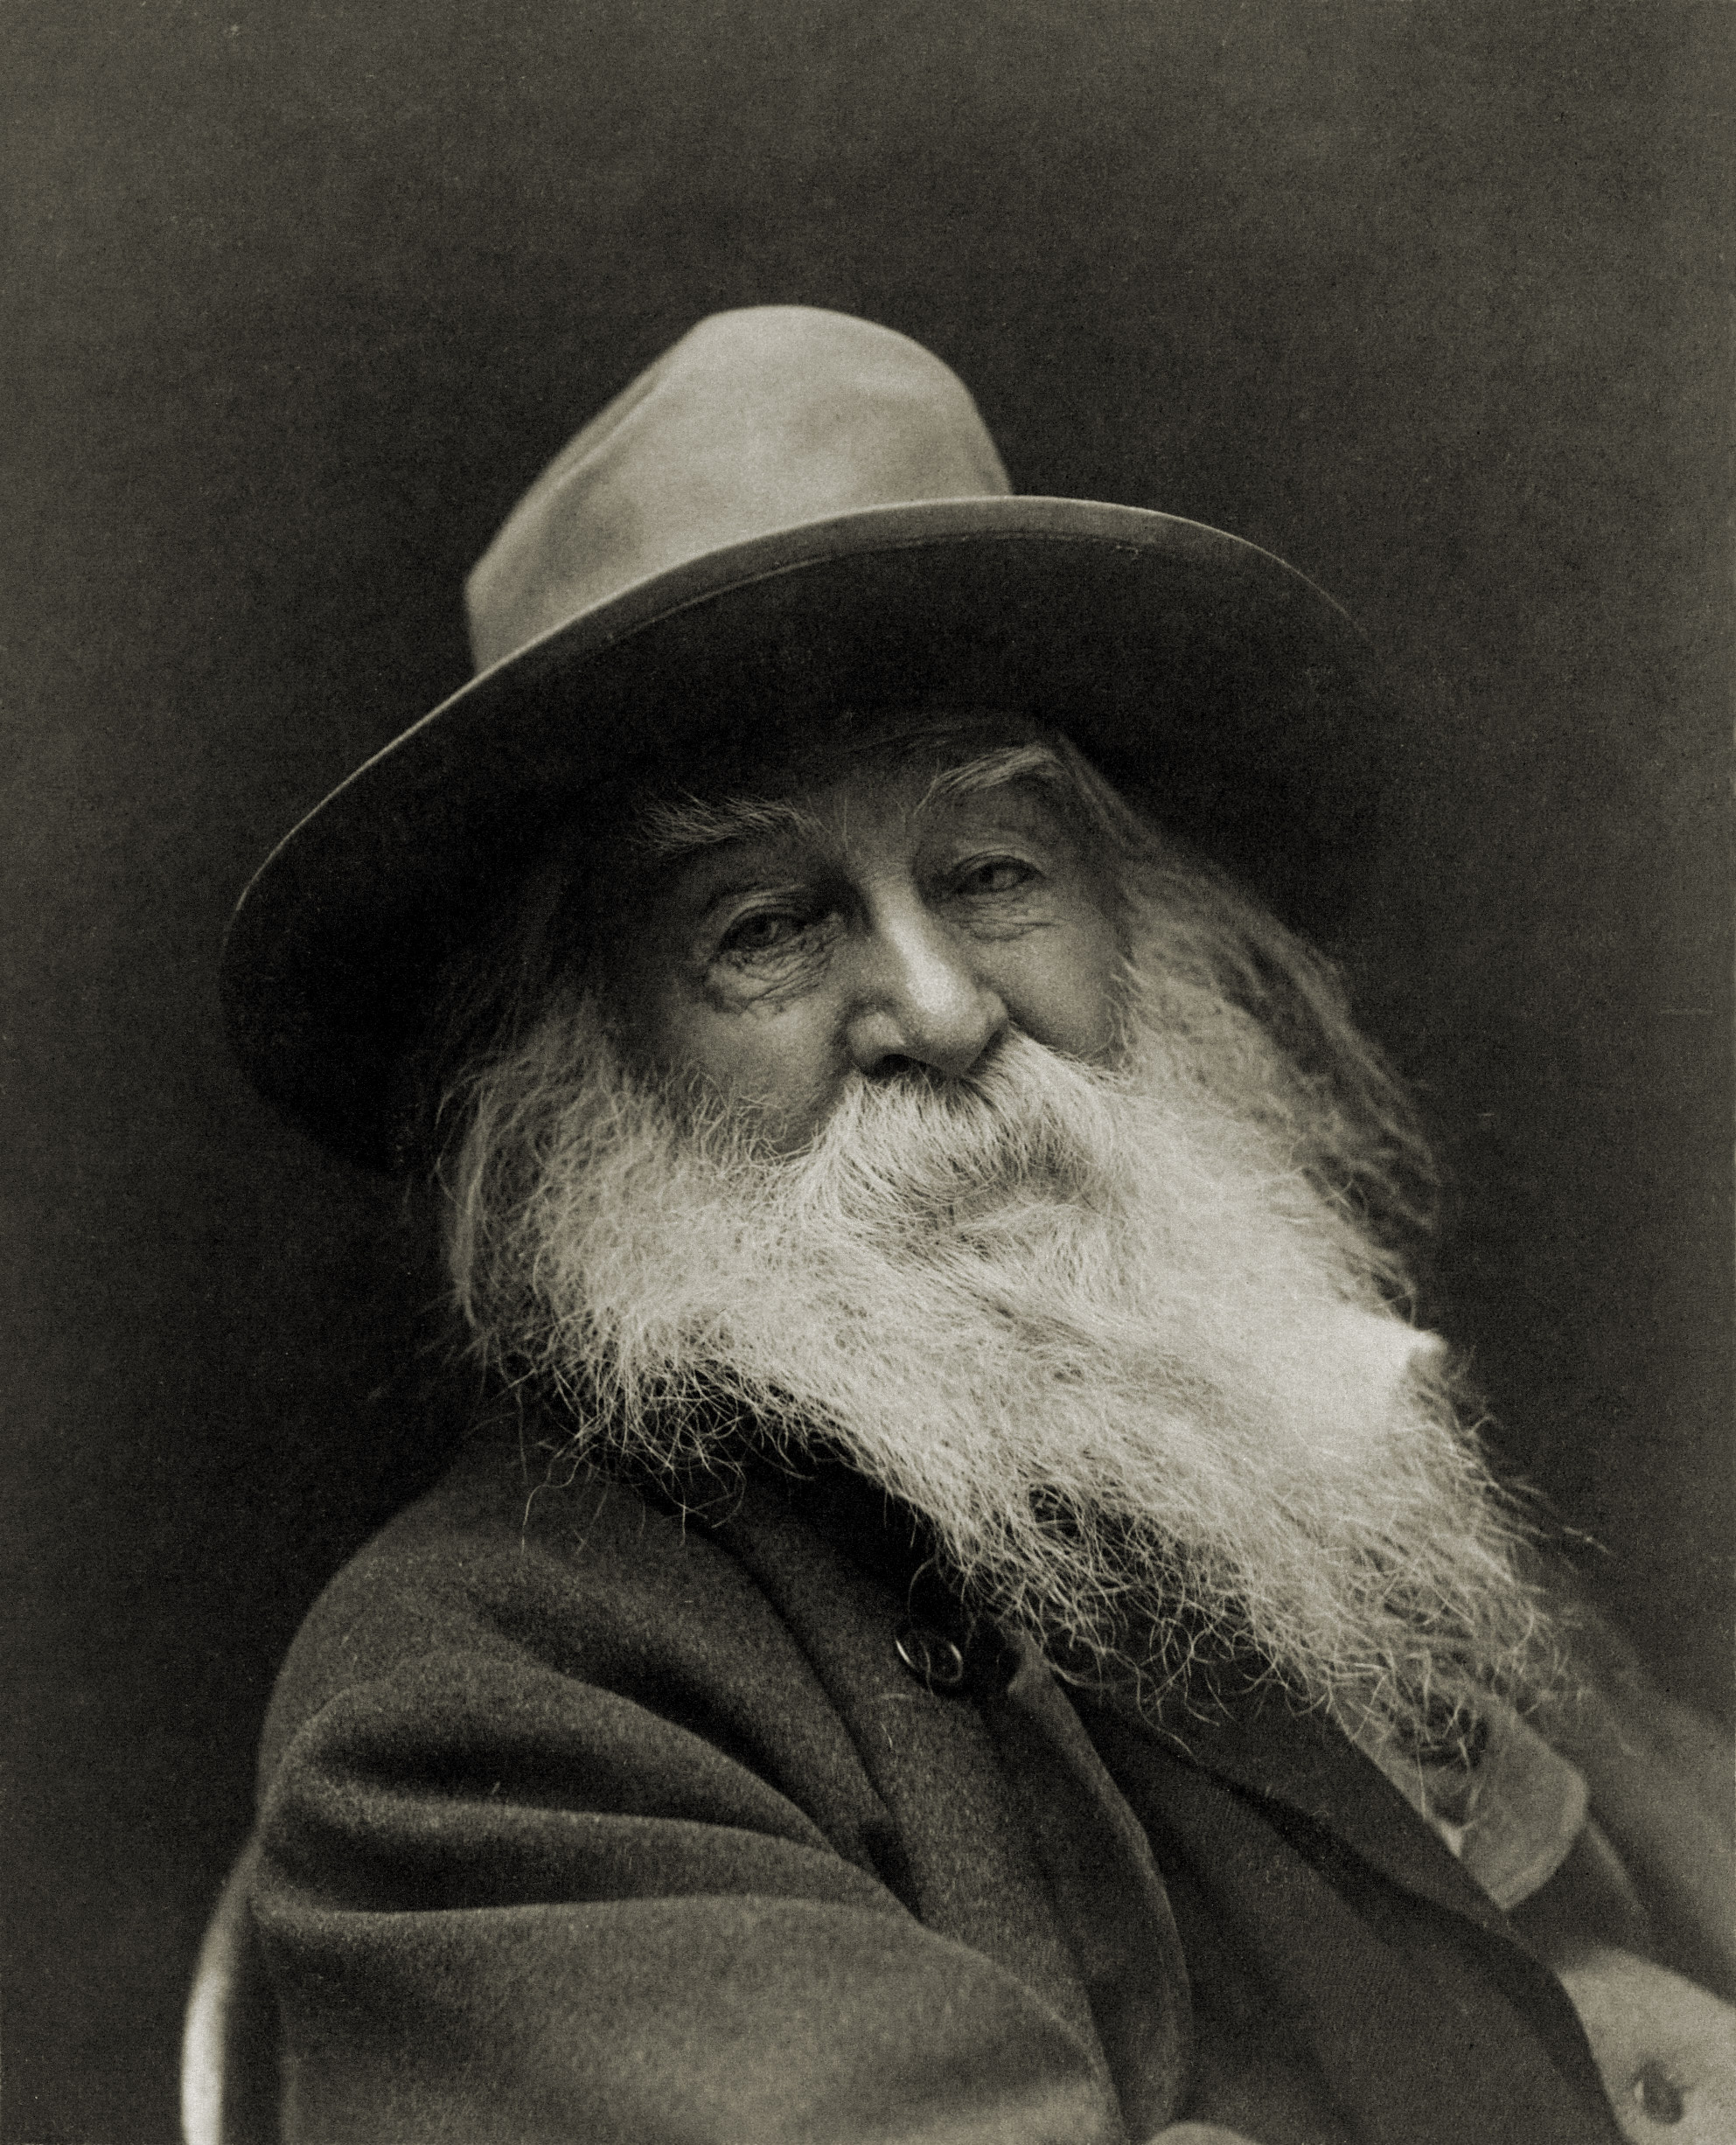 http://upload.wikimedia.org/wikipedia/commons/a/a1/Walt_Whitman_edit_2.jpg